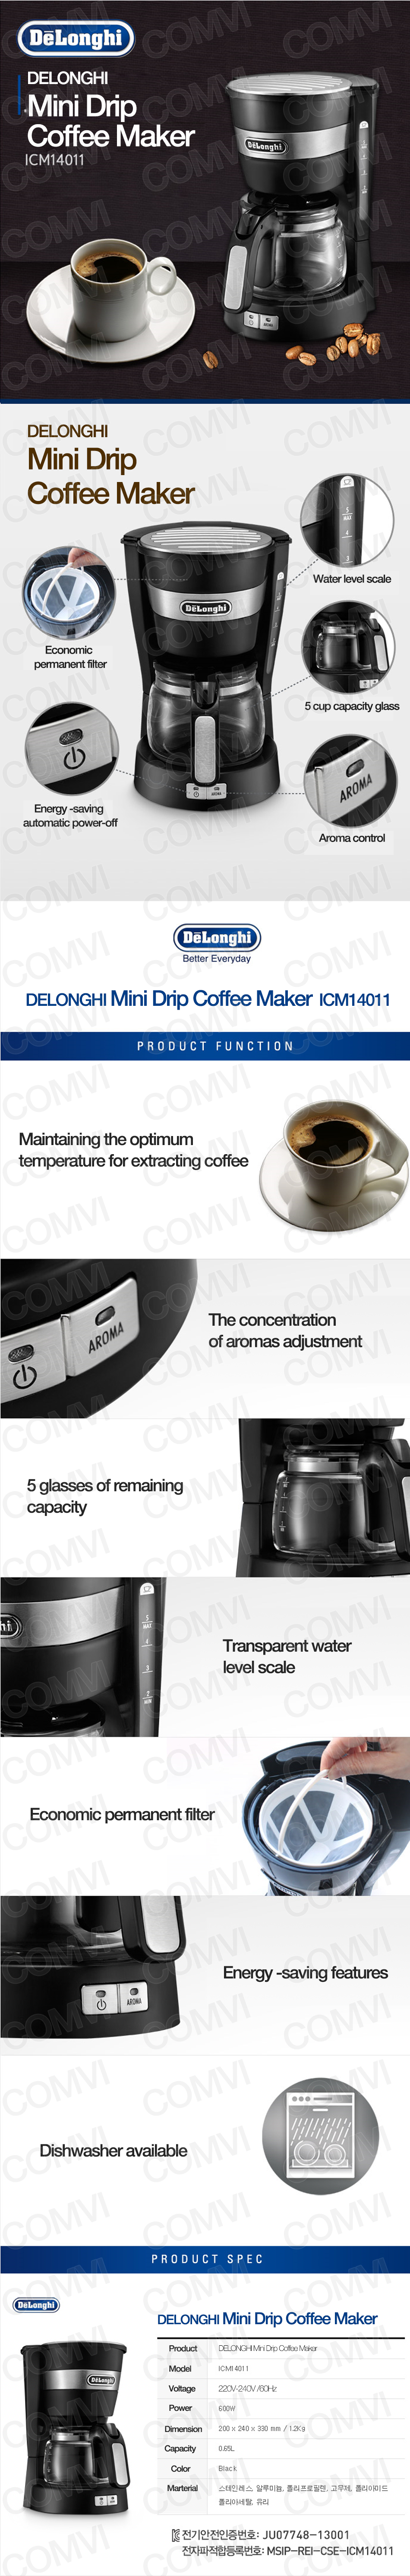 Mini Drip Coffee Maker : NEW DELONGHI Mini Drip Coffee Maker ICM14011 AROMA 650ml E